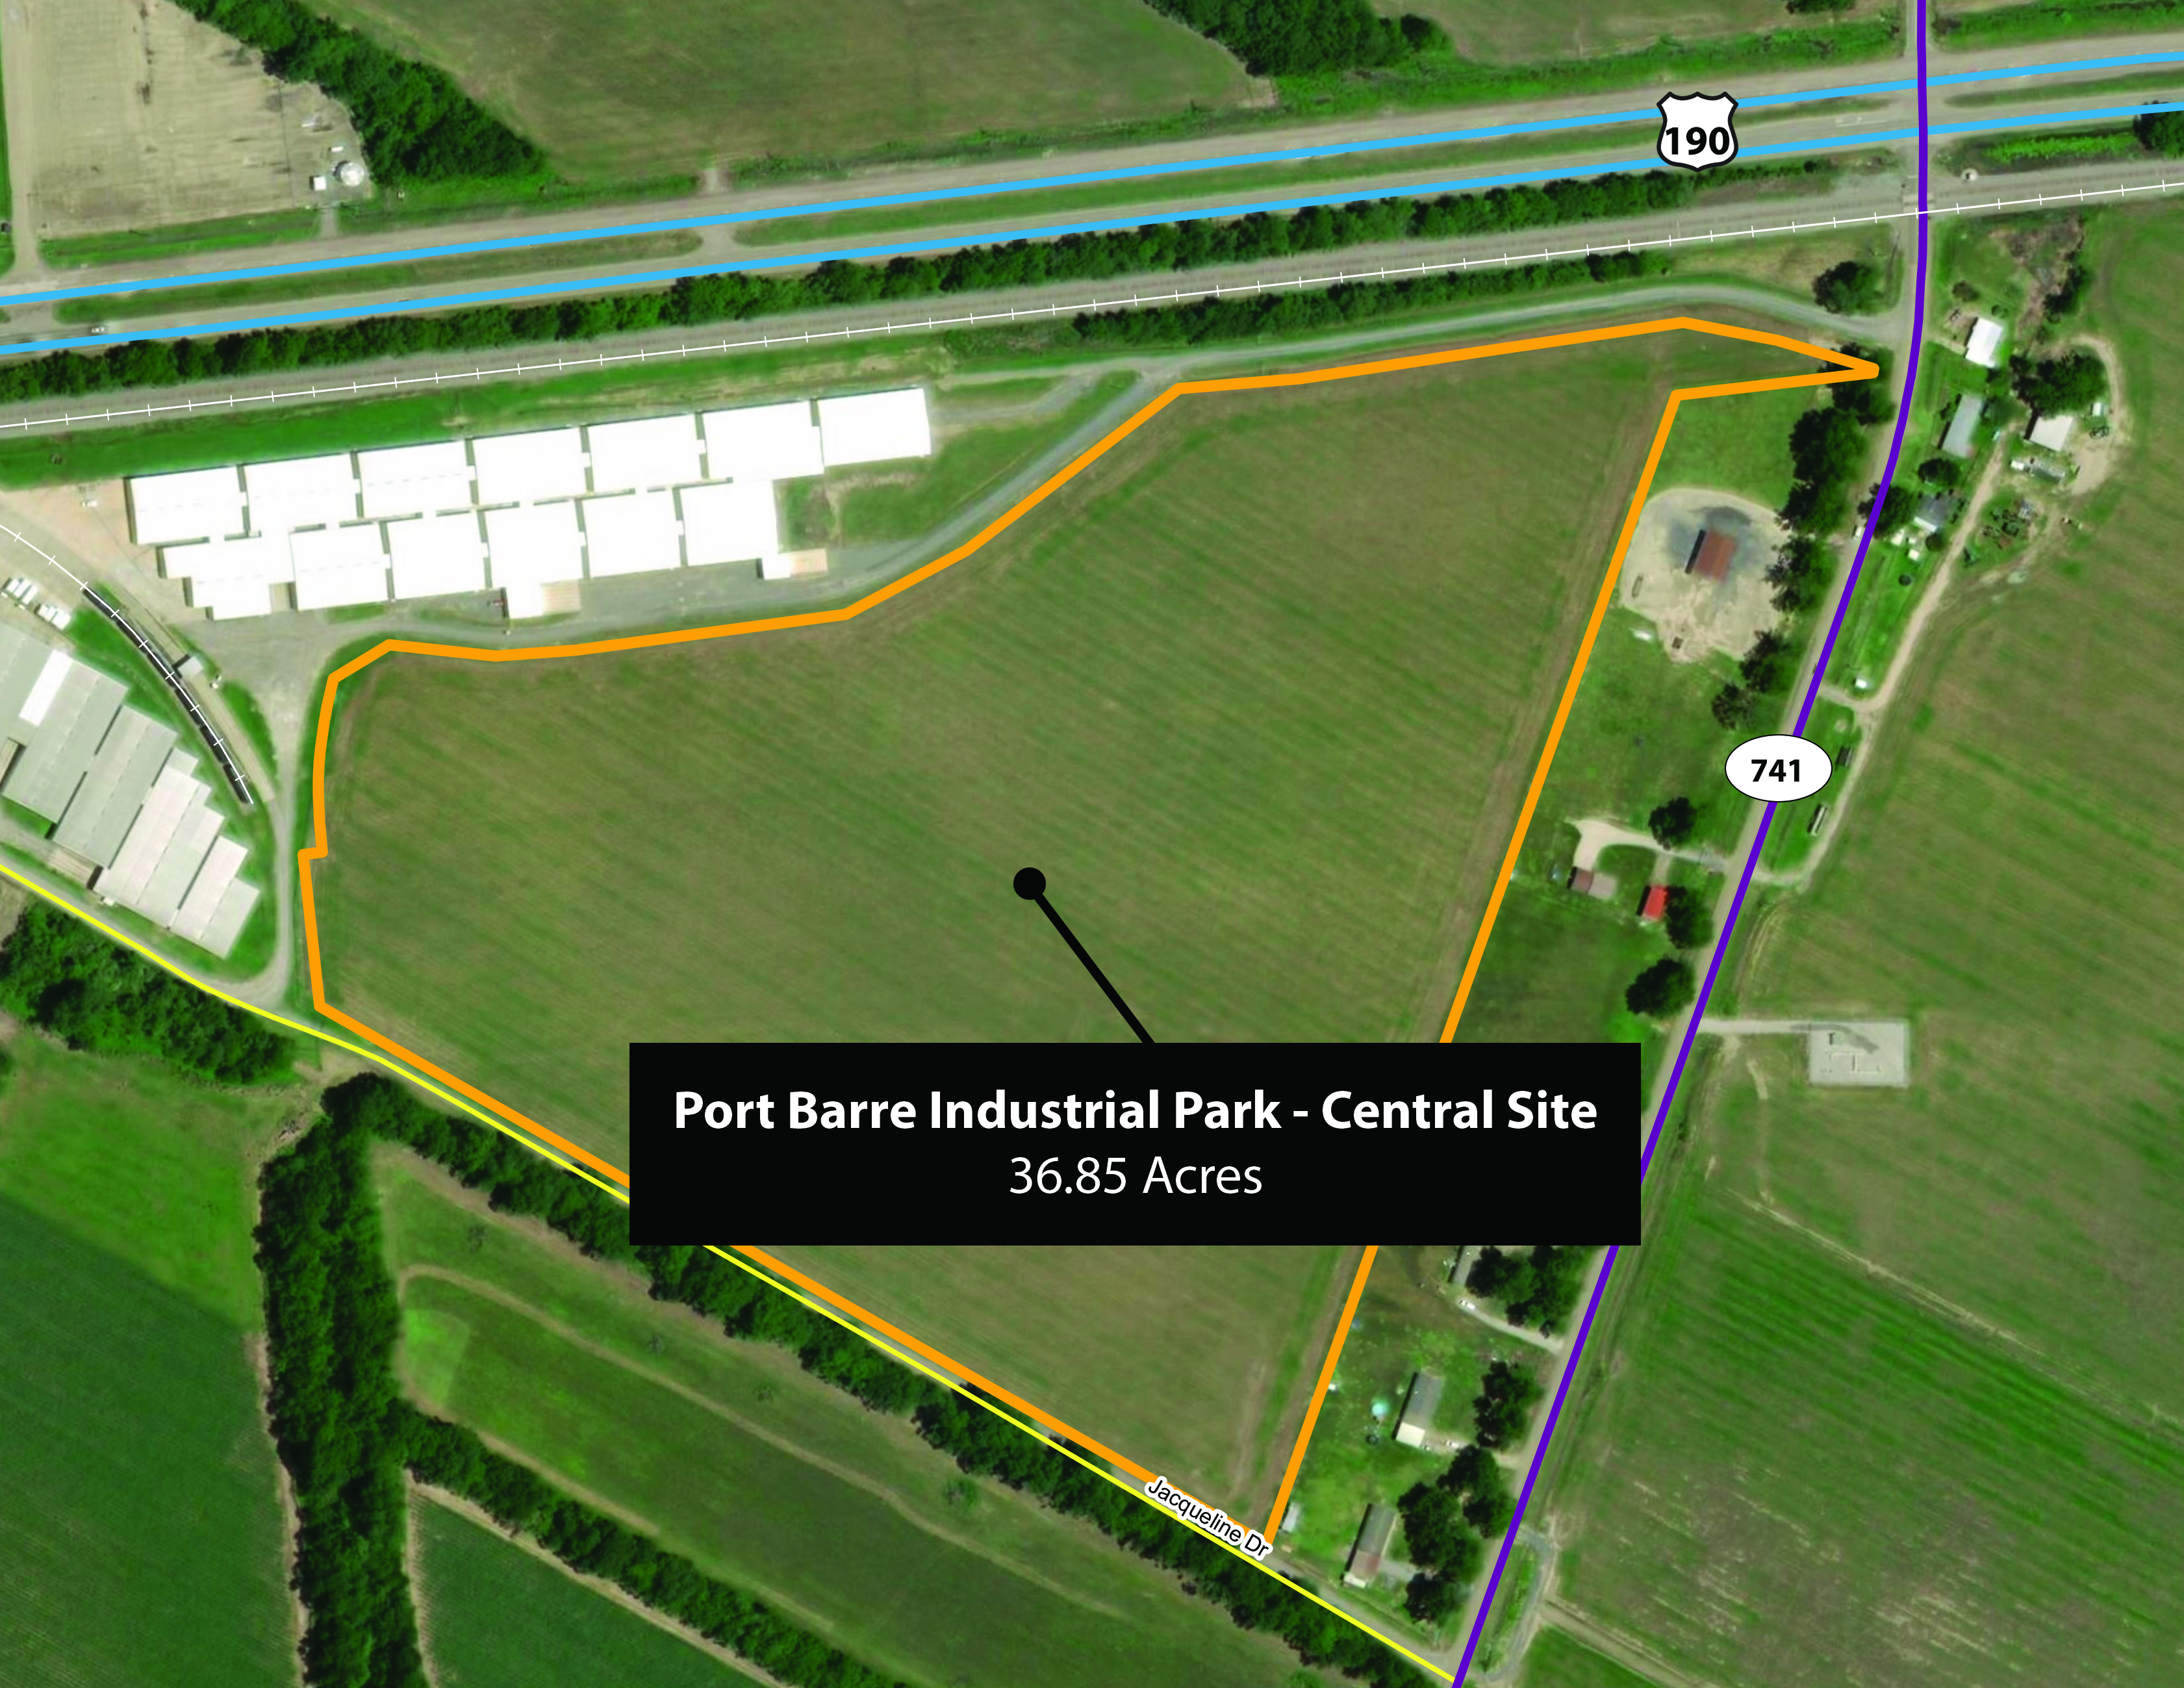 Port Barre Industrial Park - Central Site Aerial Map